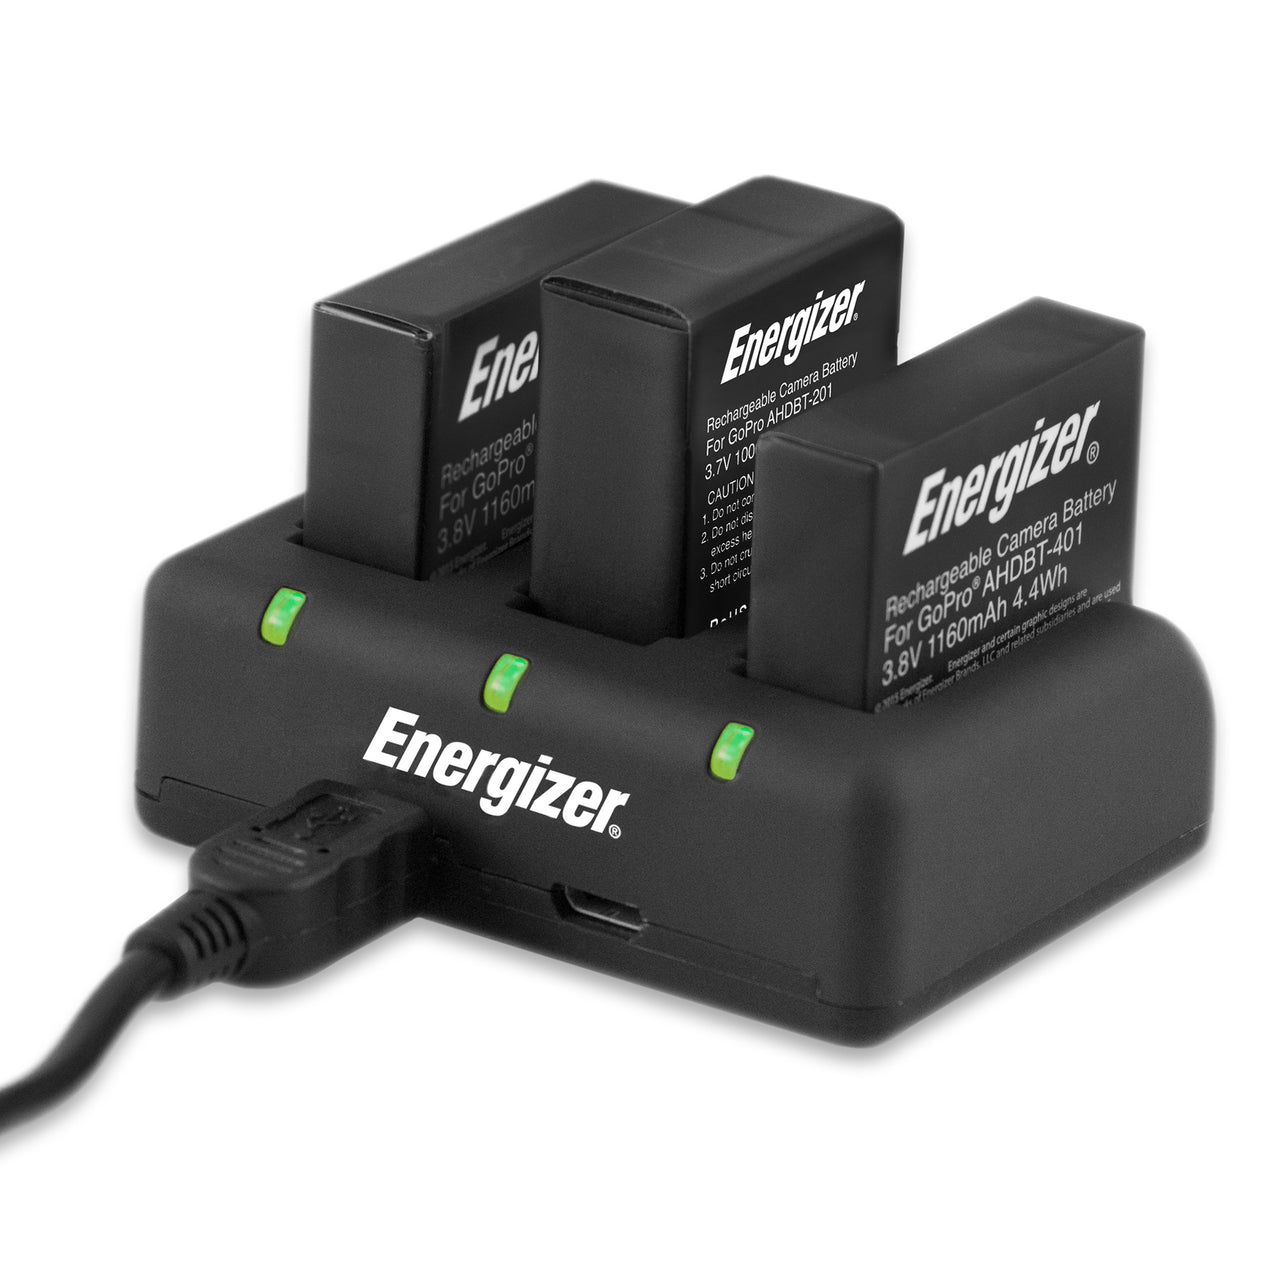 Energizer® Triple GoPro 3 & 4 Battery Charger